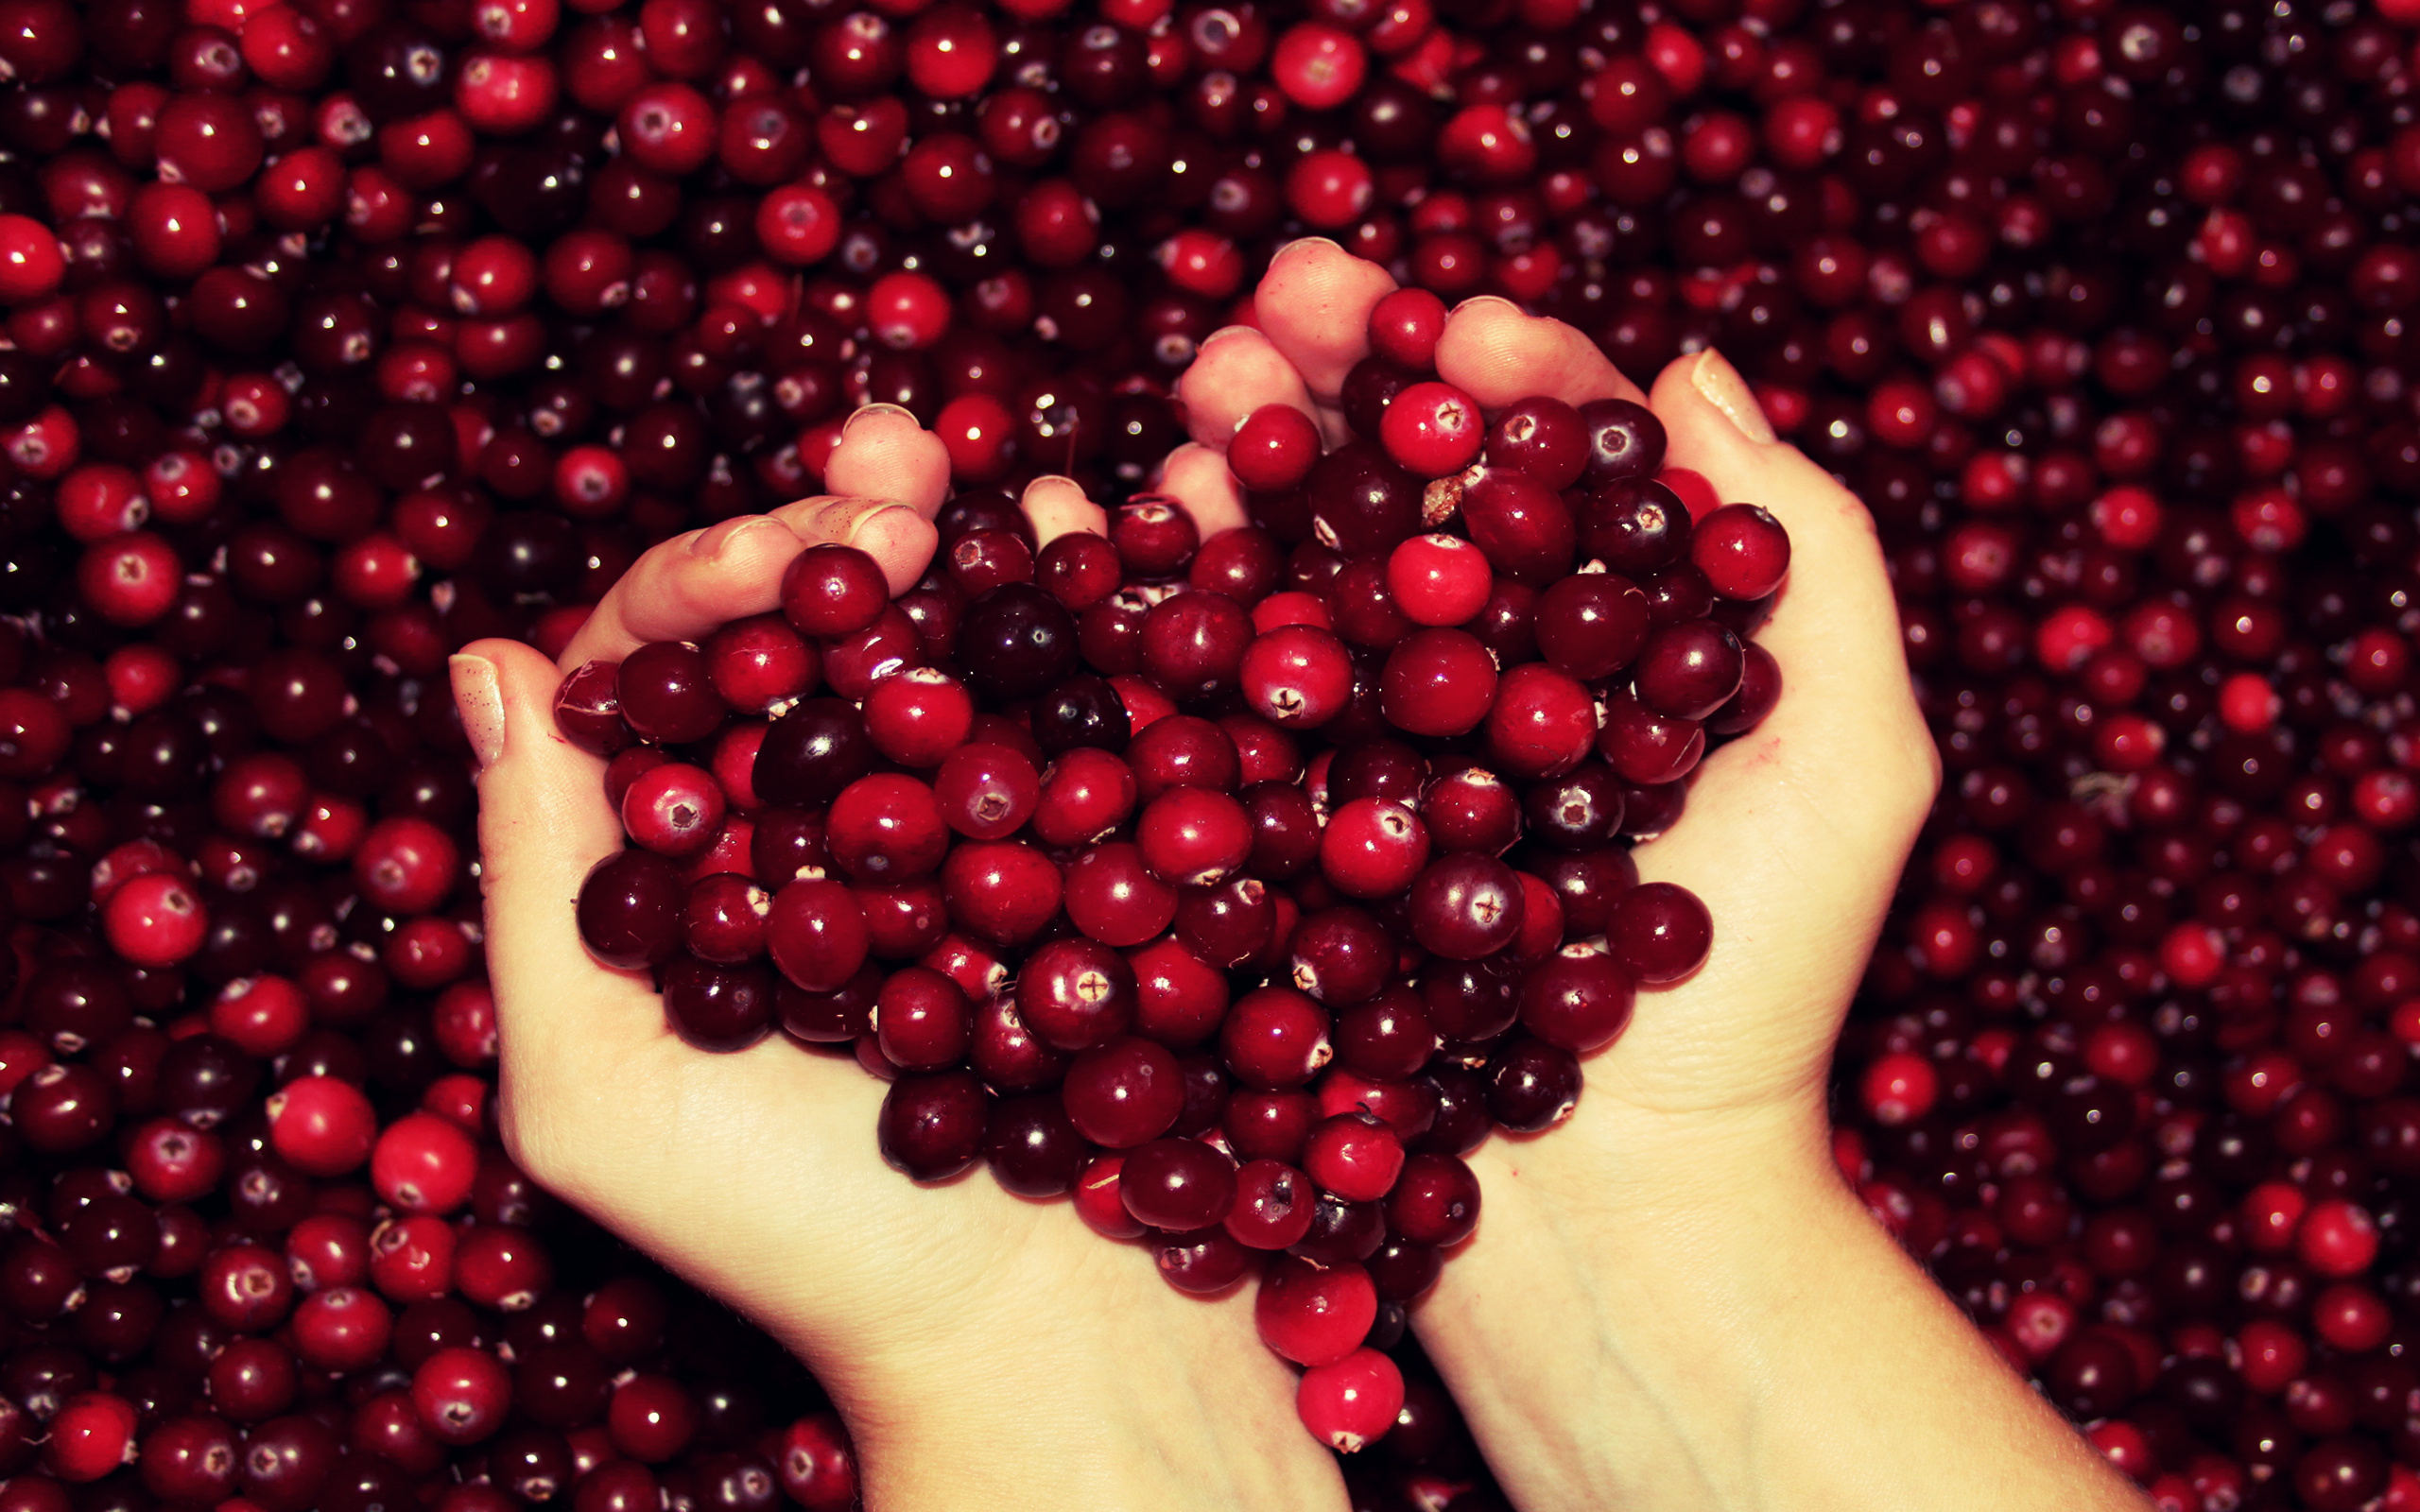 autumn-free-wallpaper-autumn-s-cranberry-heart_2560x1600_93128-1